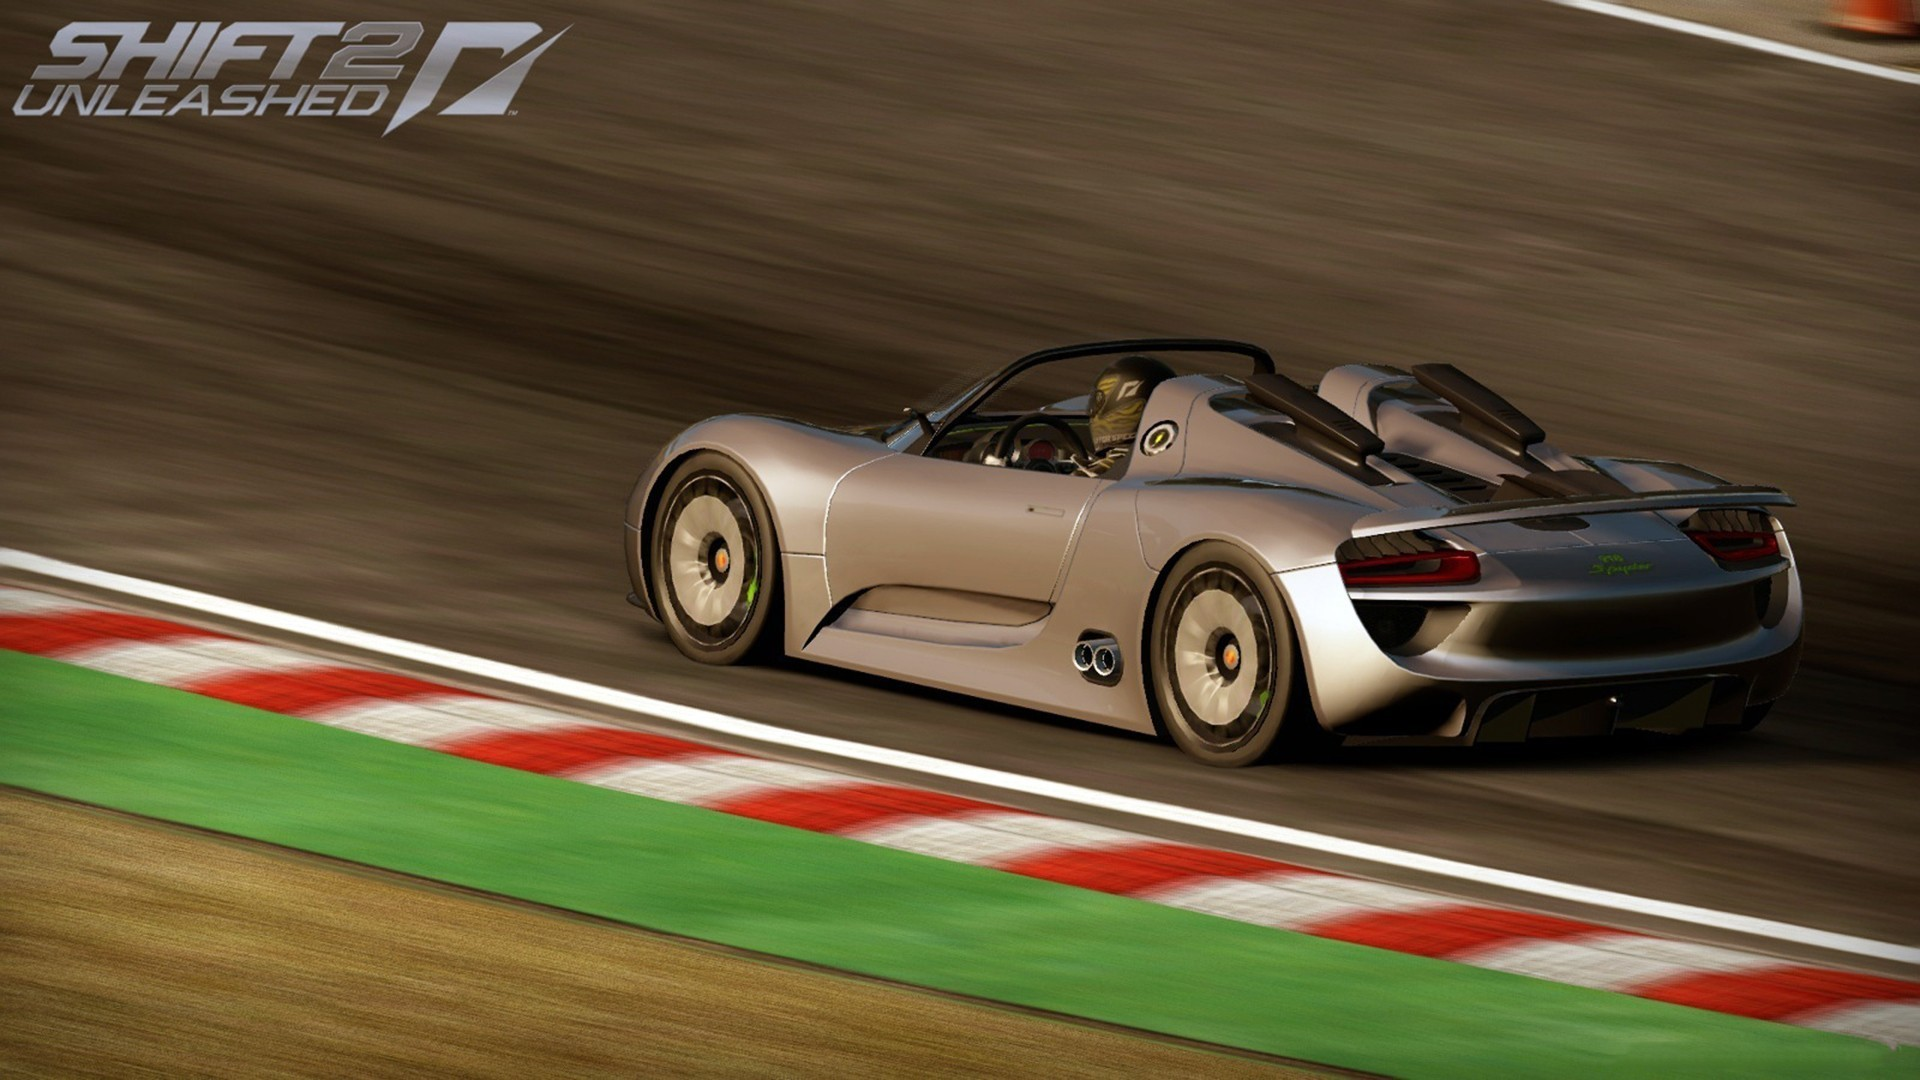 unleashed porsche 918 spyder cars games pc wallpaper | allwallpaper